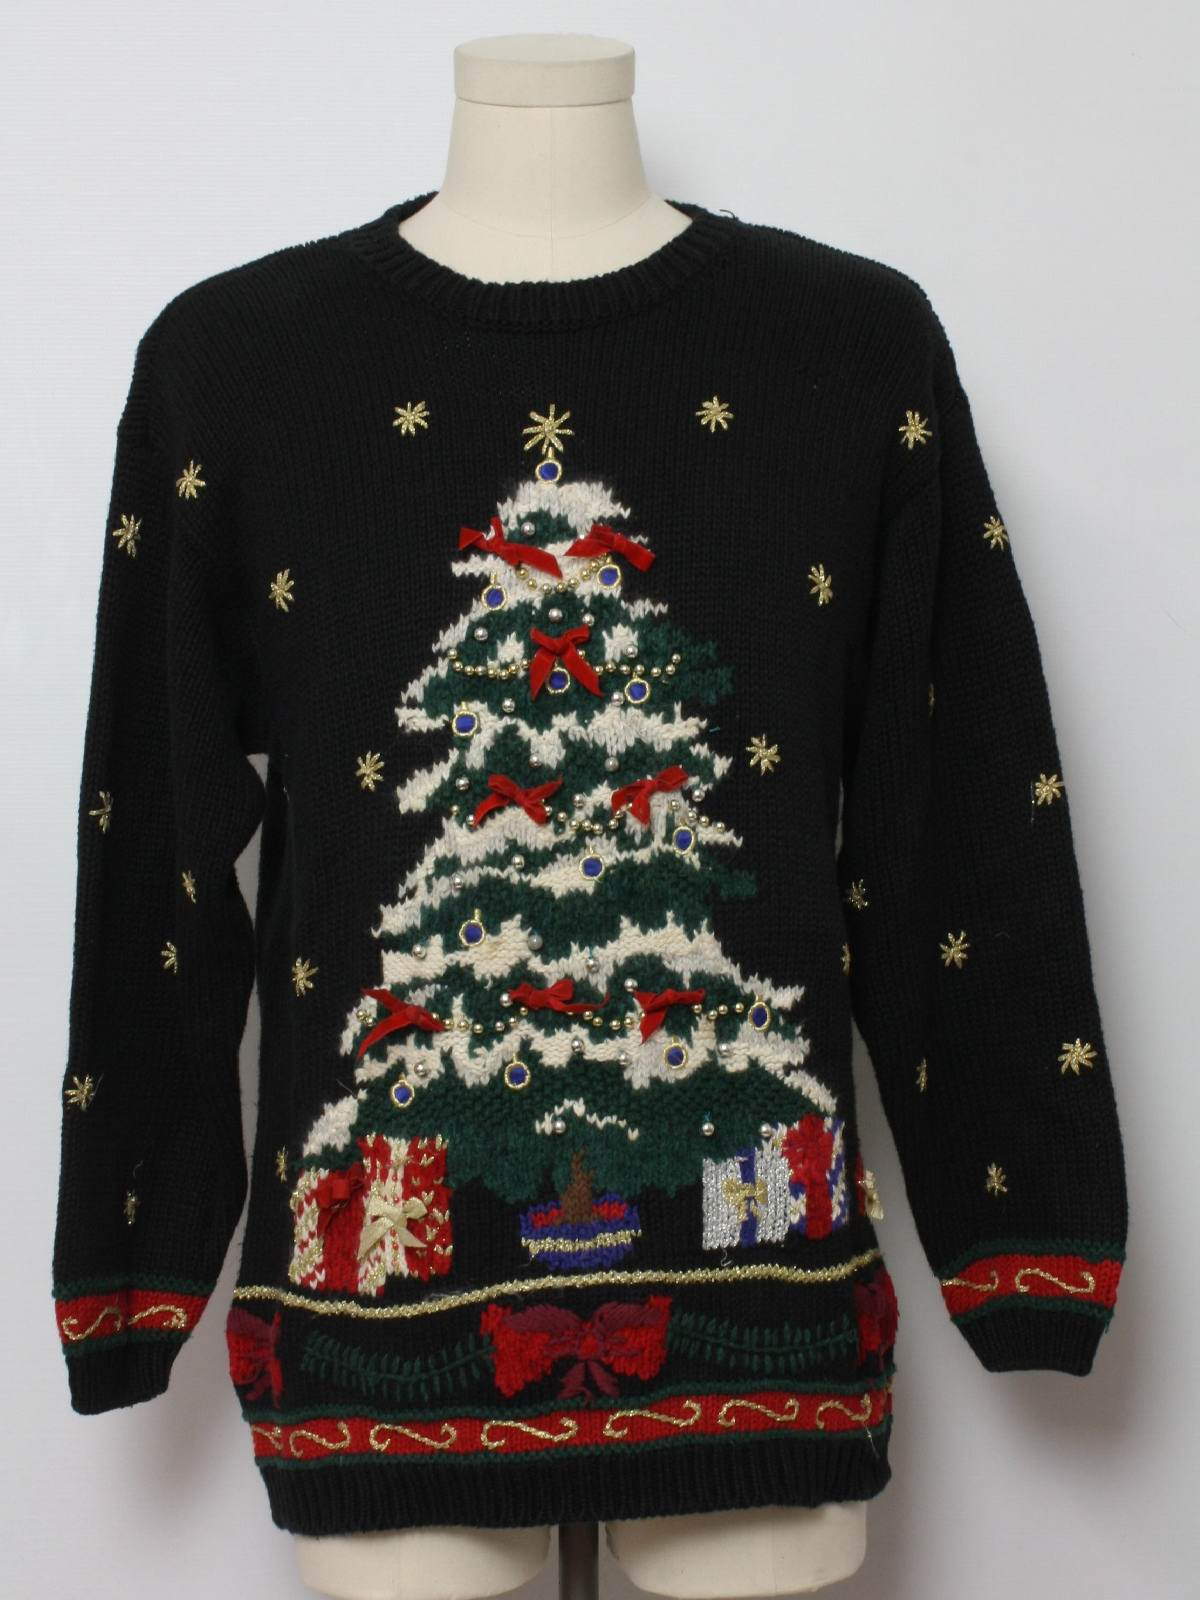 Ugly Christmas Sweaters for Big & Tall Men - The Ugly Sweater Shop